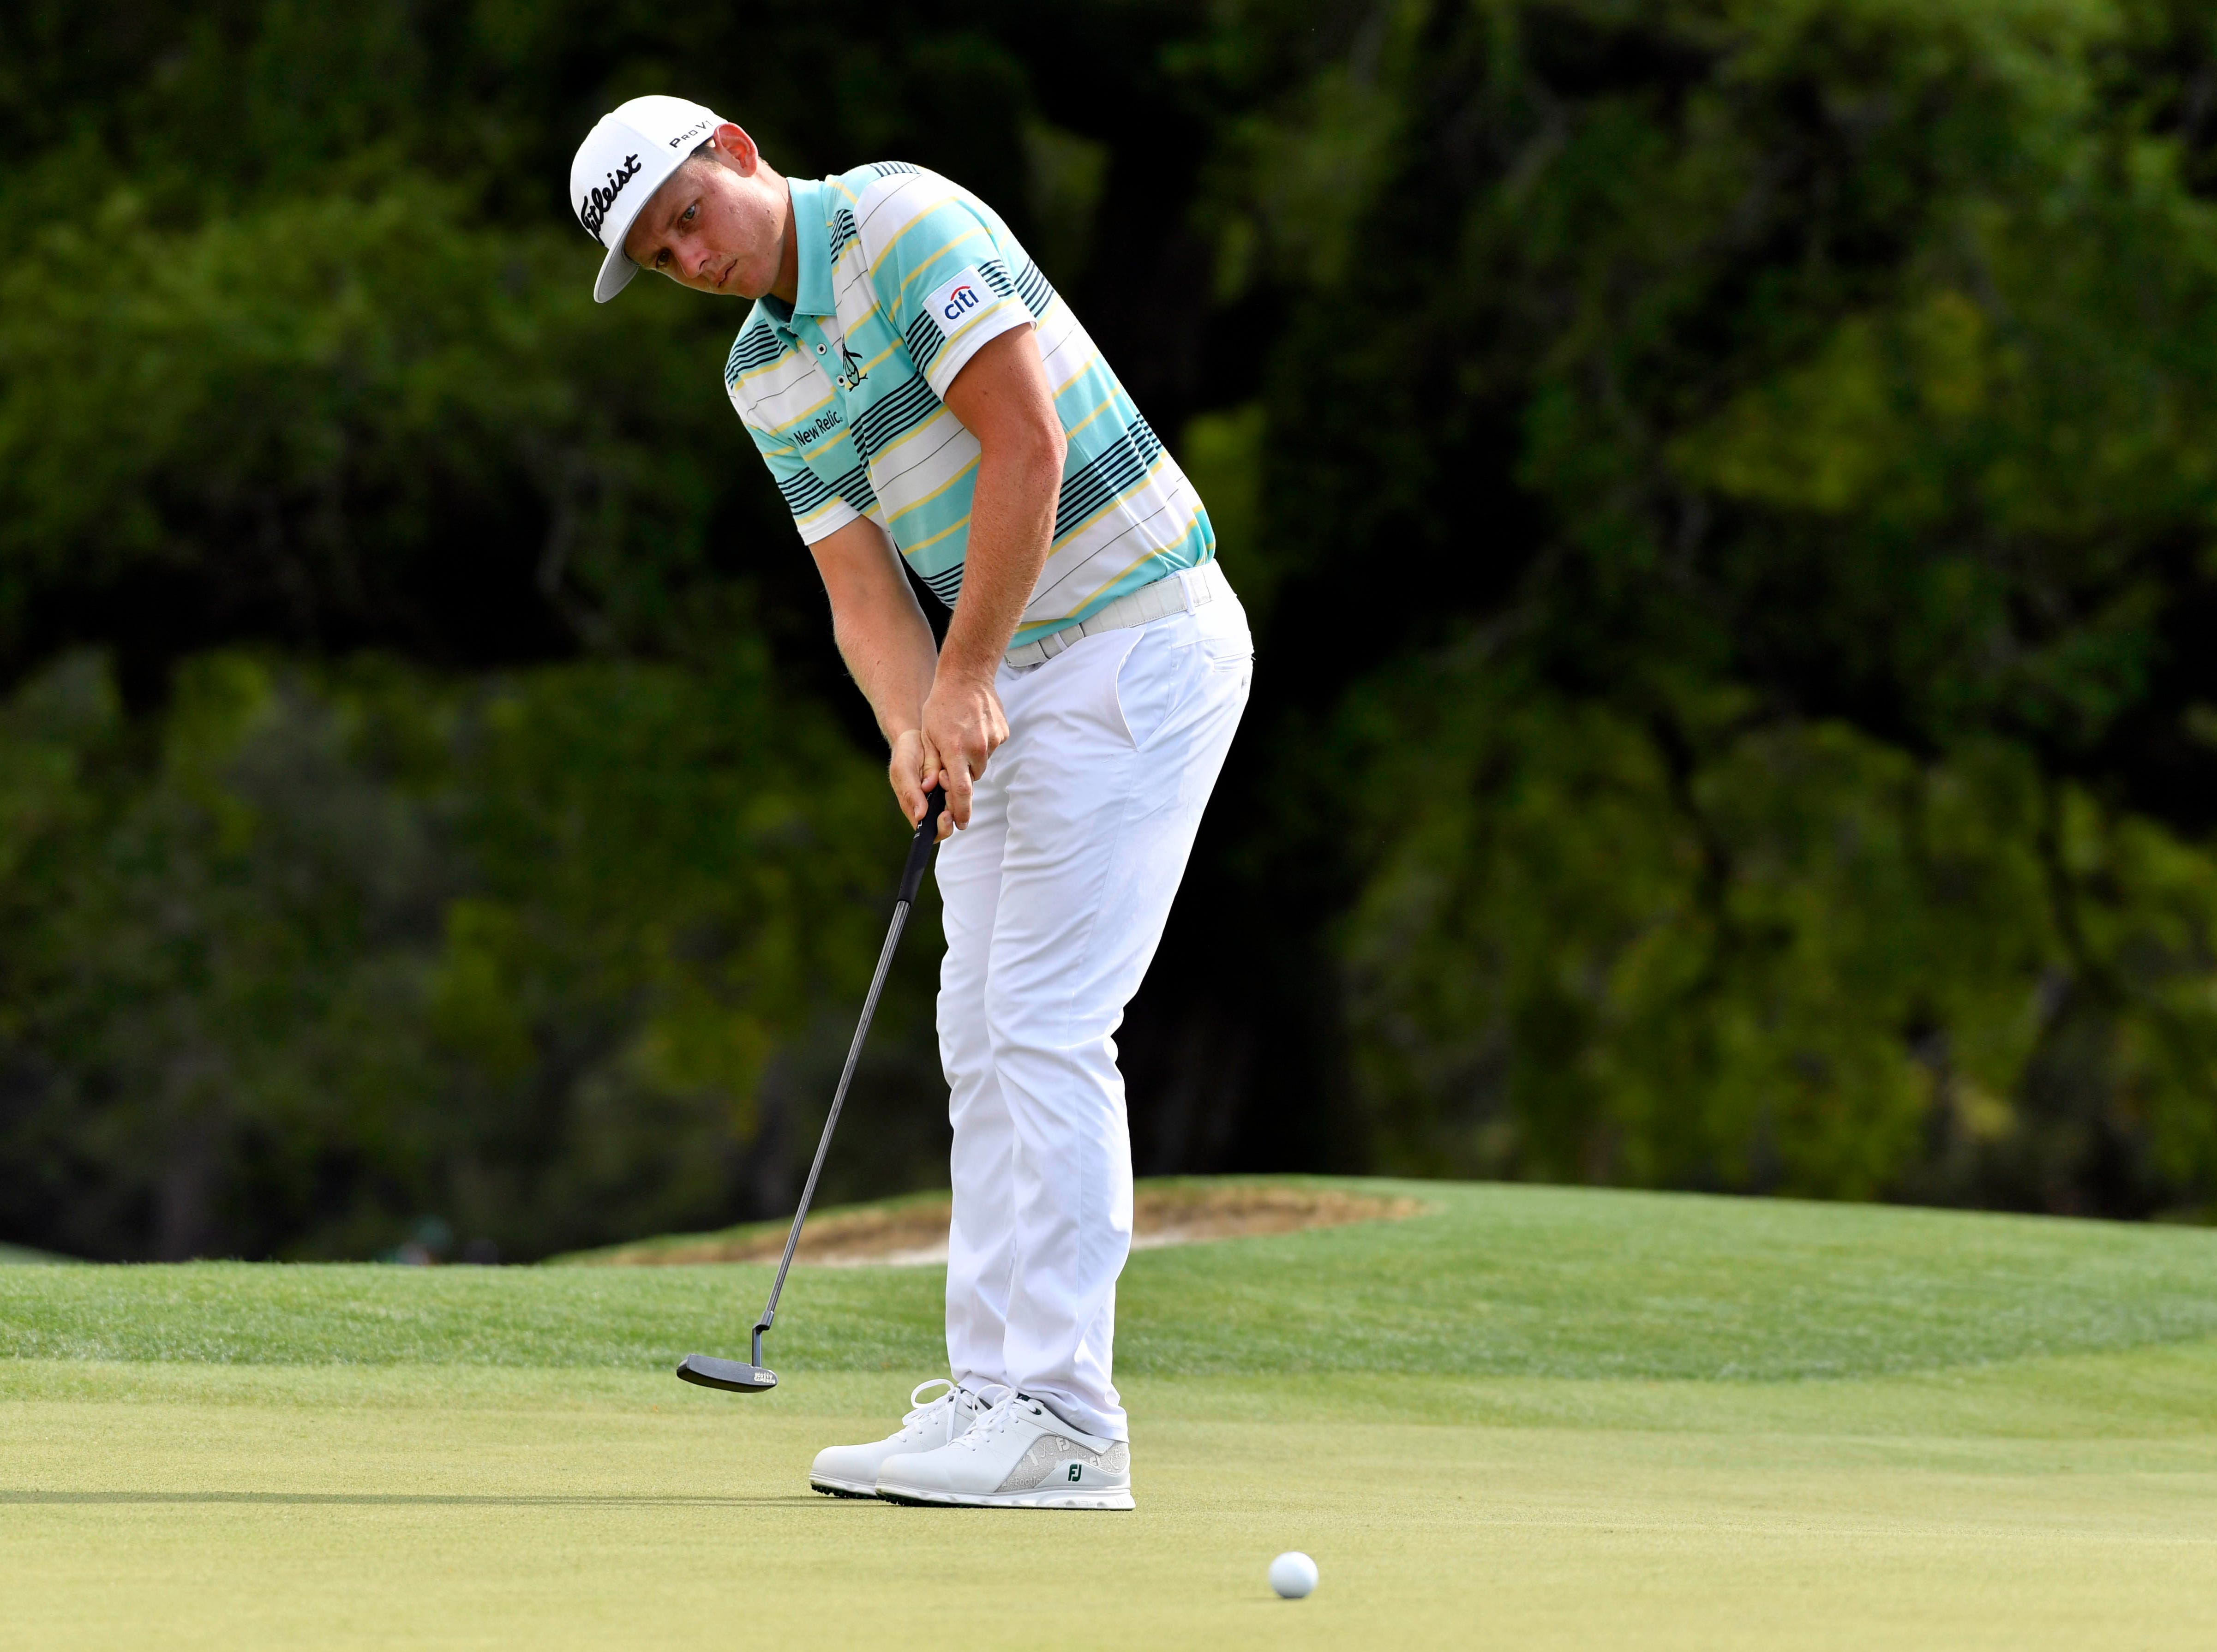 Cameron Smith putts on the 18th green during the first round of the Masters.